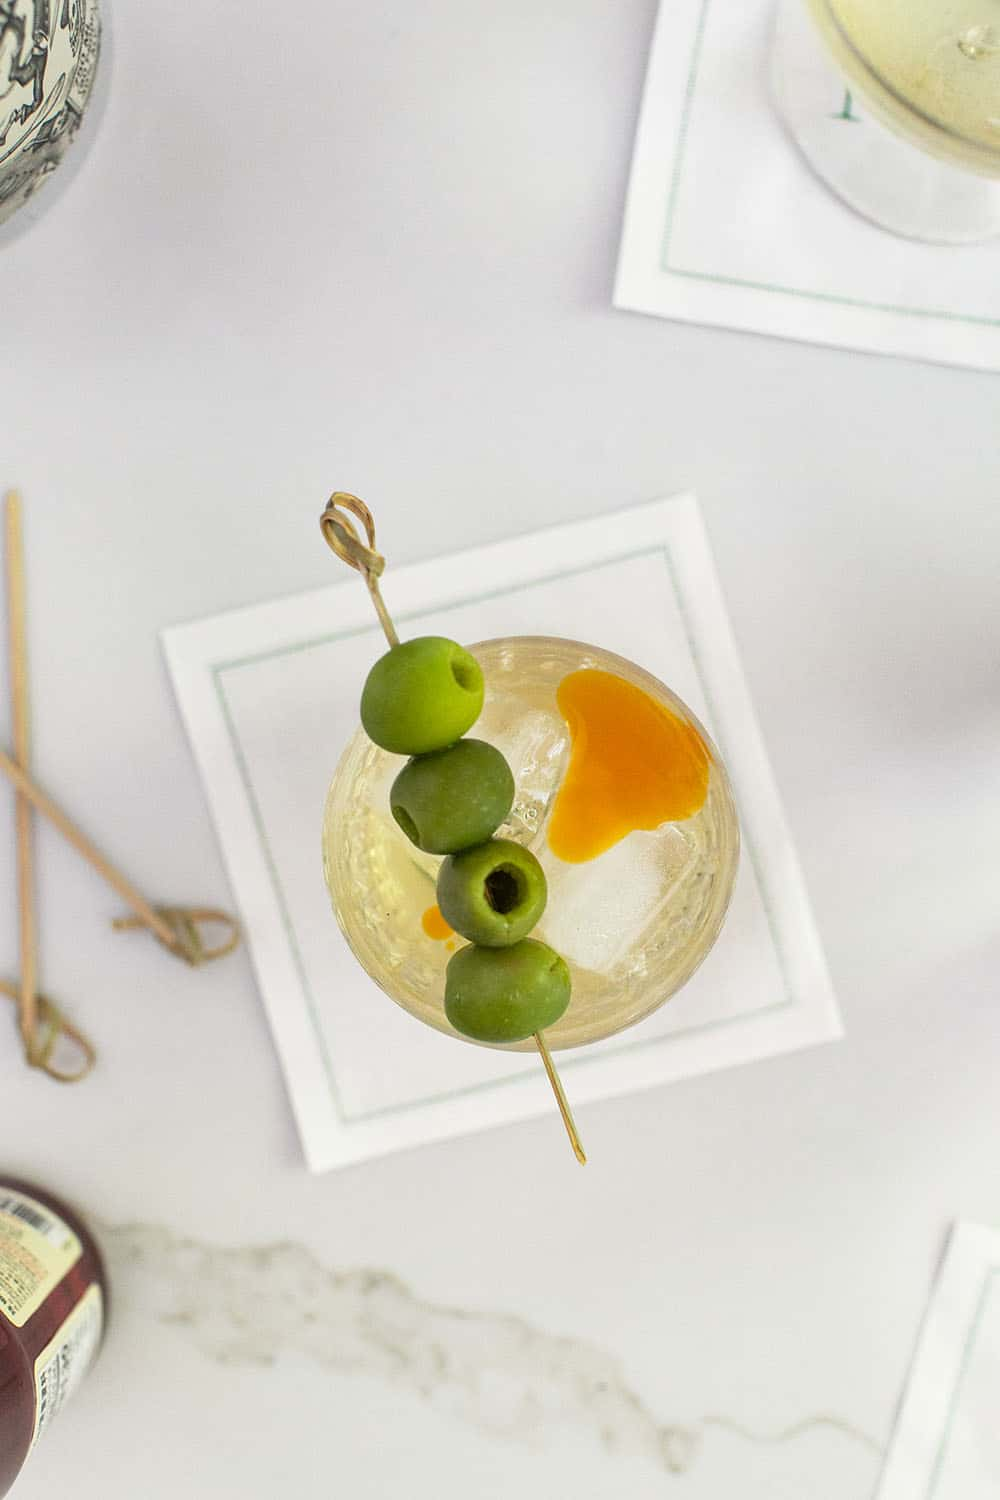 Dirty martini with 4 green olives and a dash of chili oil over the top.